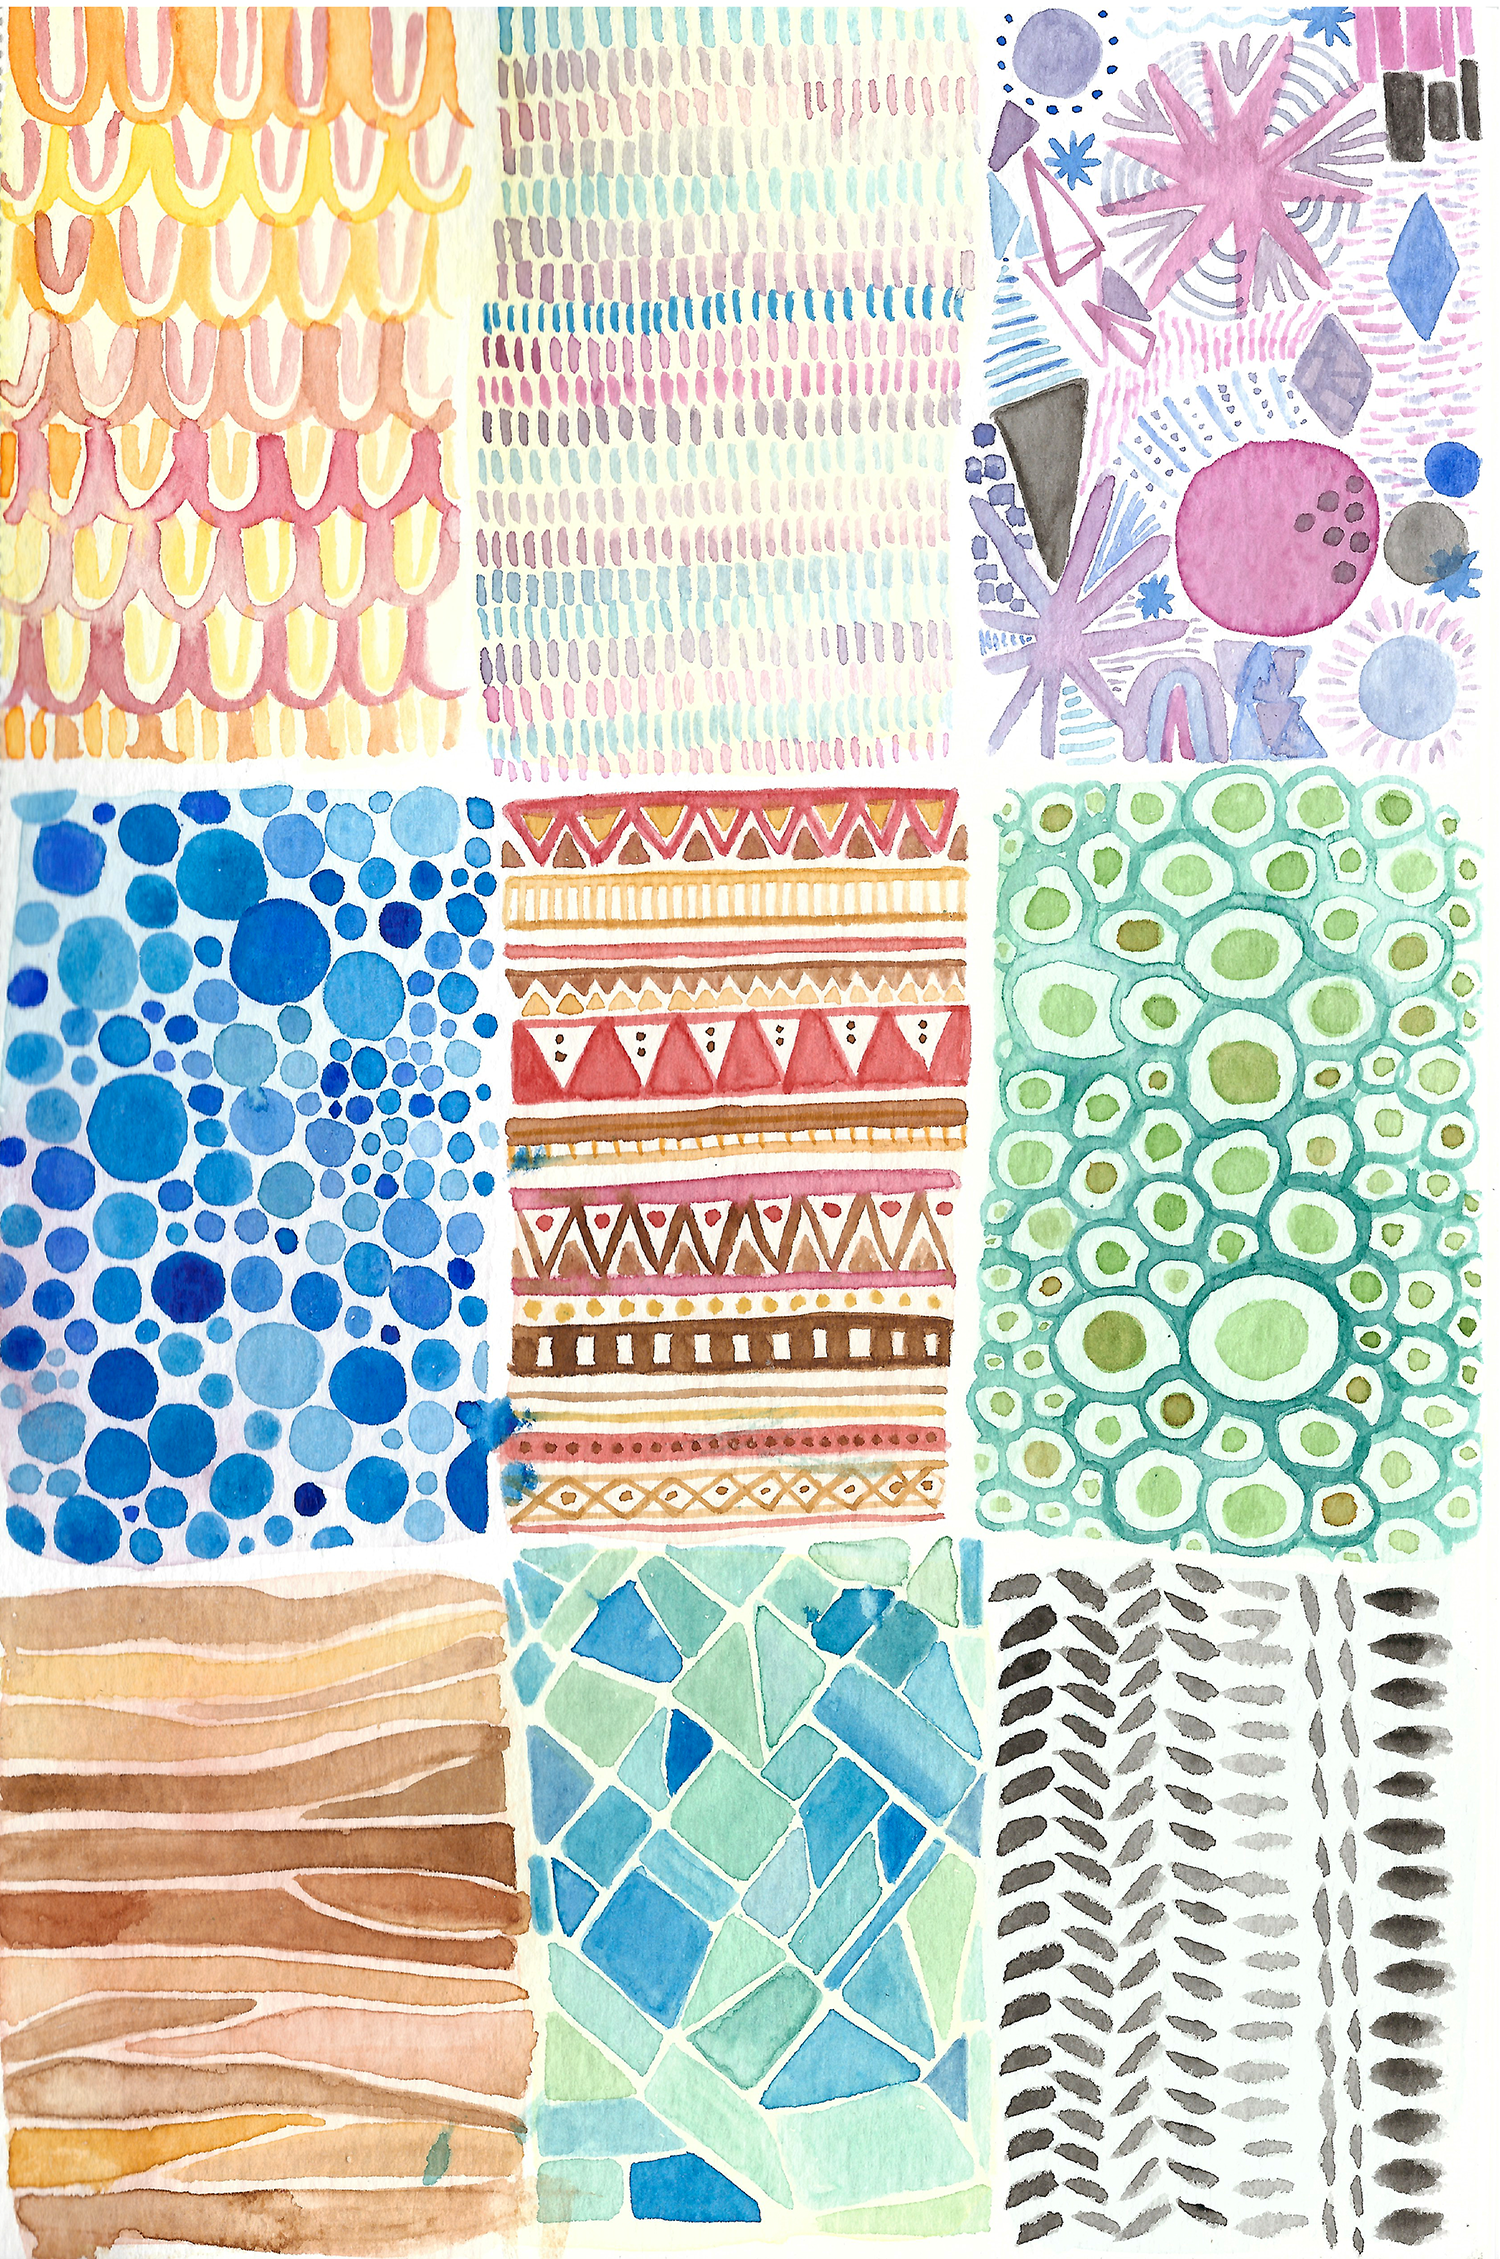 Learning to Create Watercolor Textures •These can be incorporated into future artwork and creating them in advance provides a great reference. Via Delighted Creative Co •delightedco.com